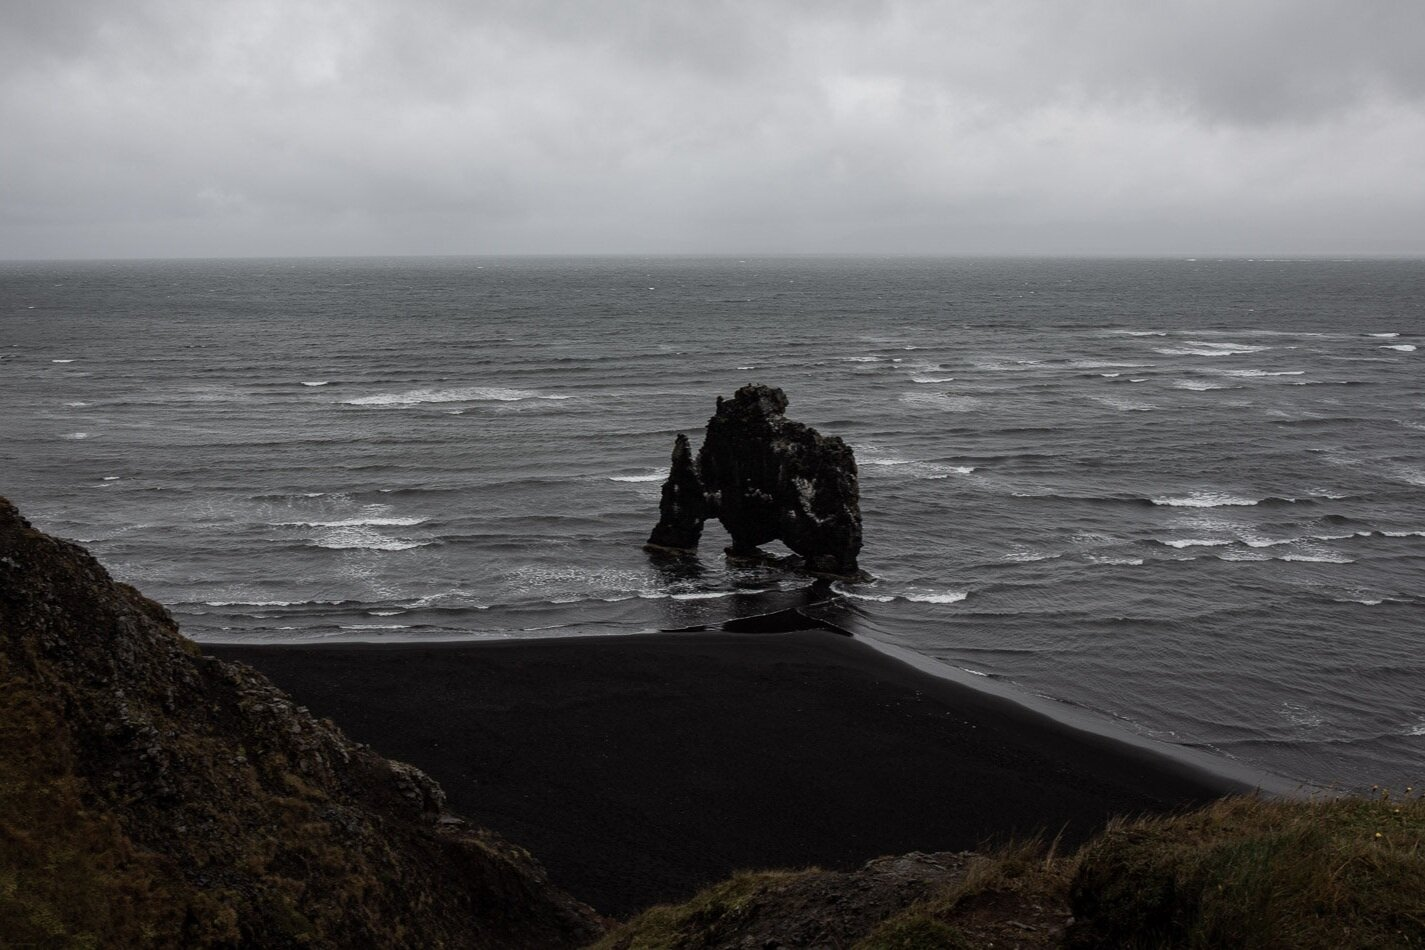 beach with black rock formation